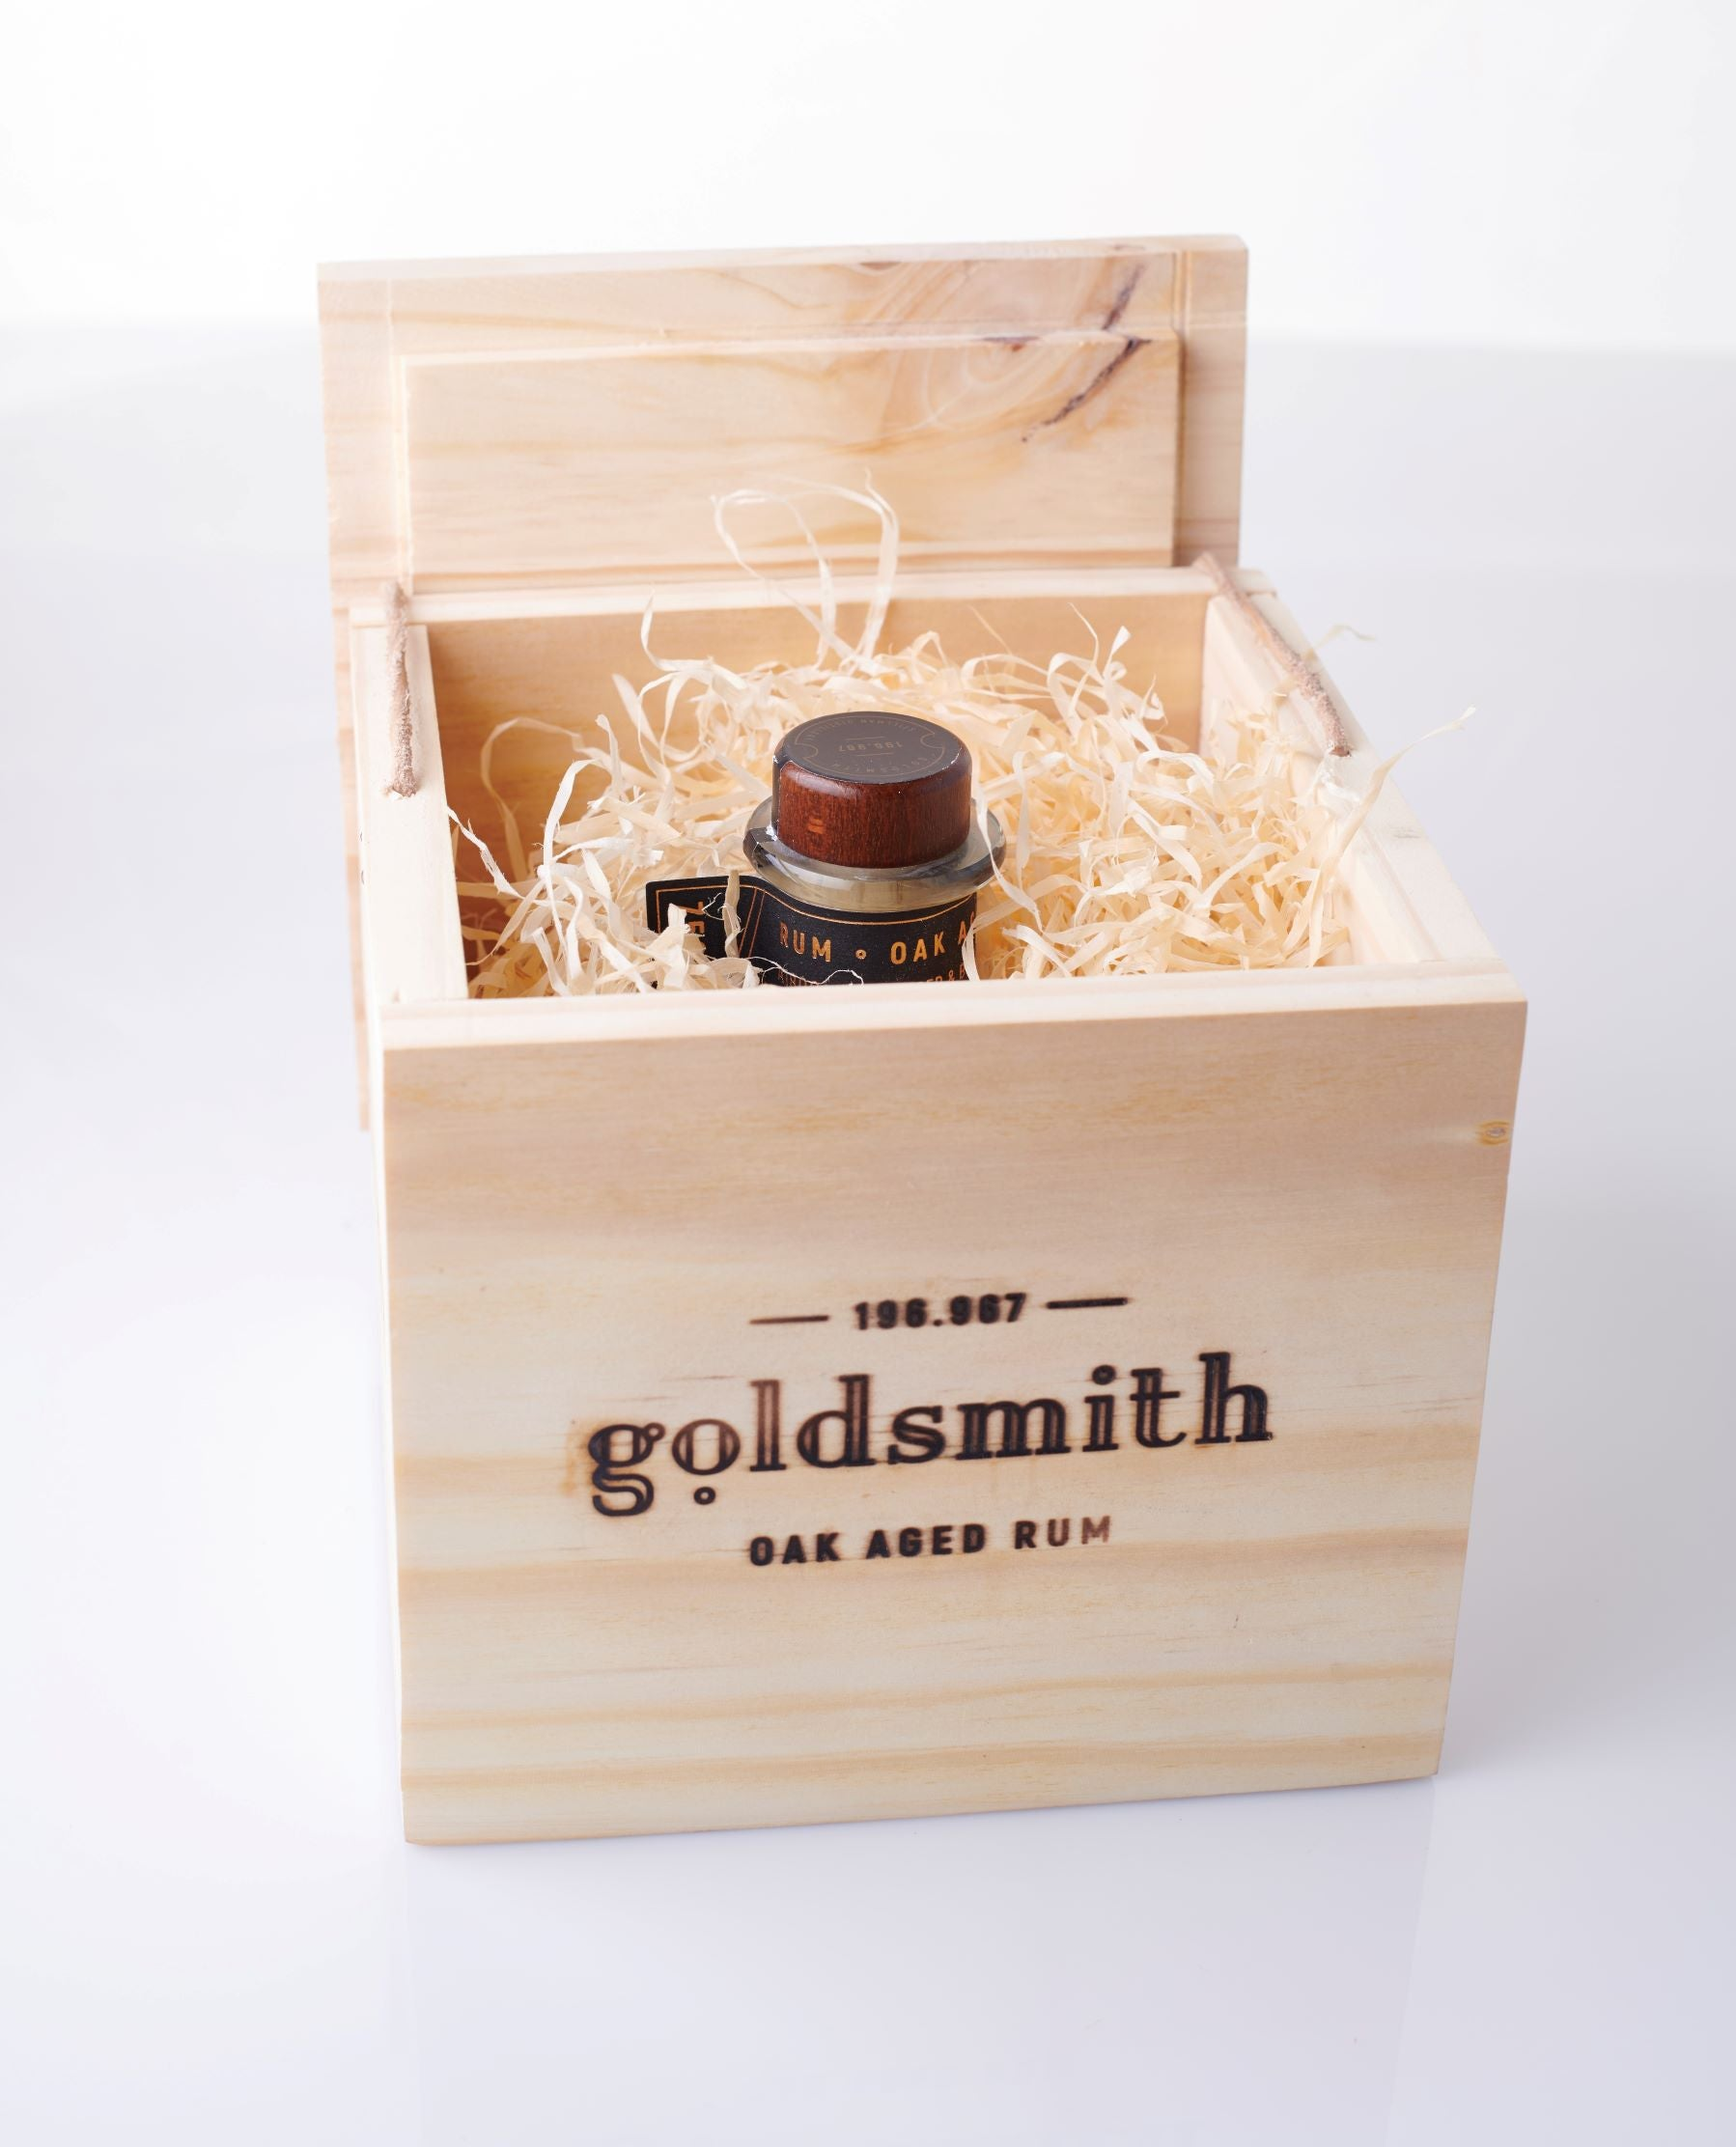 Goldsmith - Oak Aged Rum Gift Box